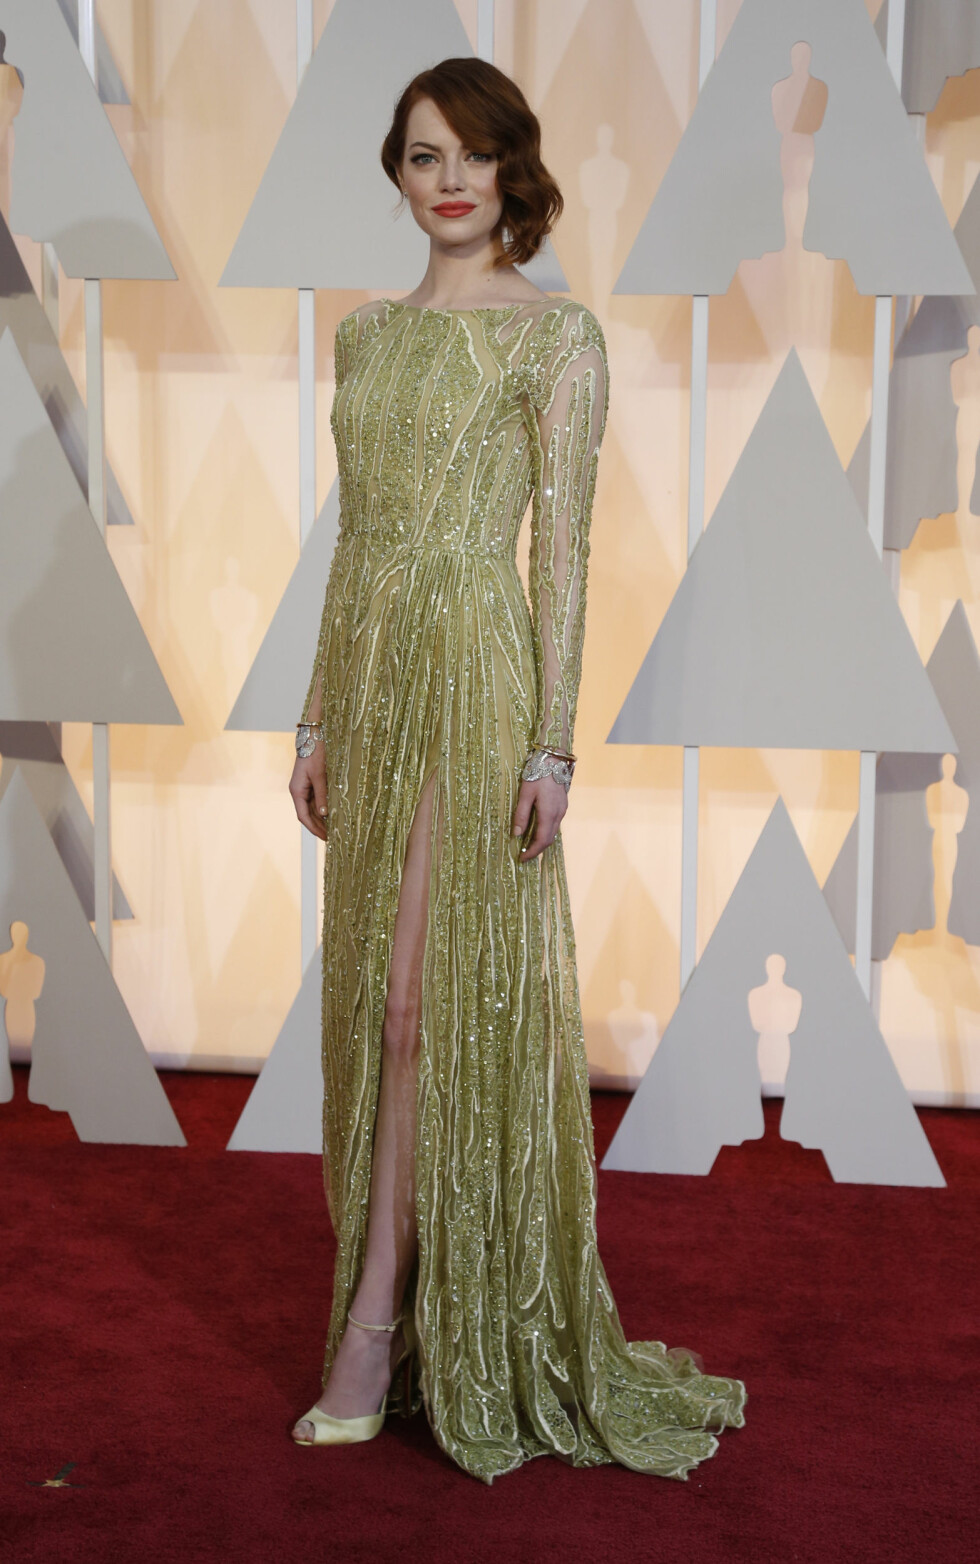 Actress Emma Stone wears a gown by  Elie Saab as she arrives at the 87th Academy Awards in Hollywood, California February 22, 2015.    REUTERS/Mario Anzuoni (UNITED STATES  - Tags: ENTERTAINMENT)   (OSCARS-ARRIVALS)  Foto: Reuters